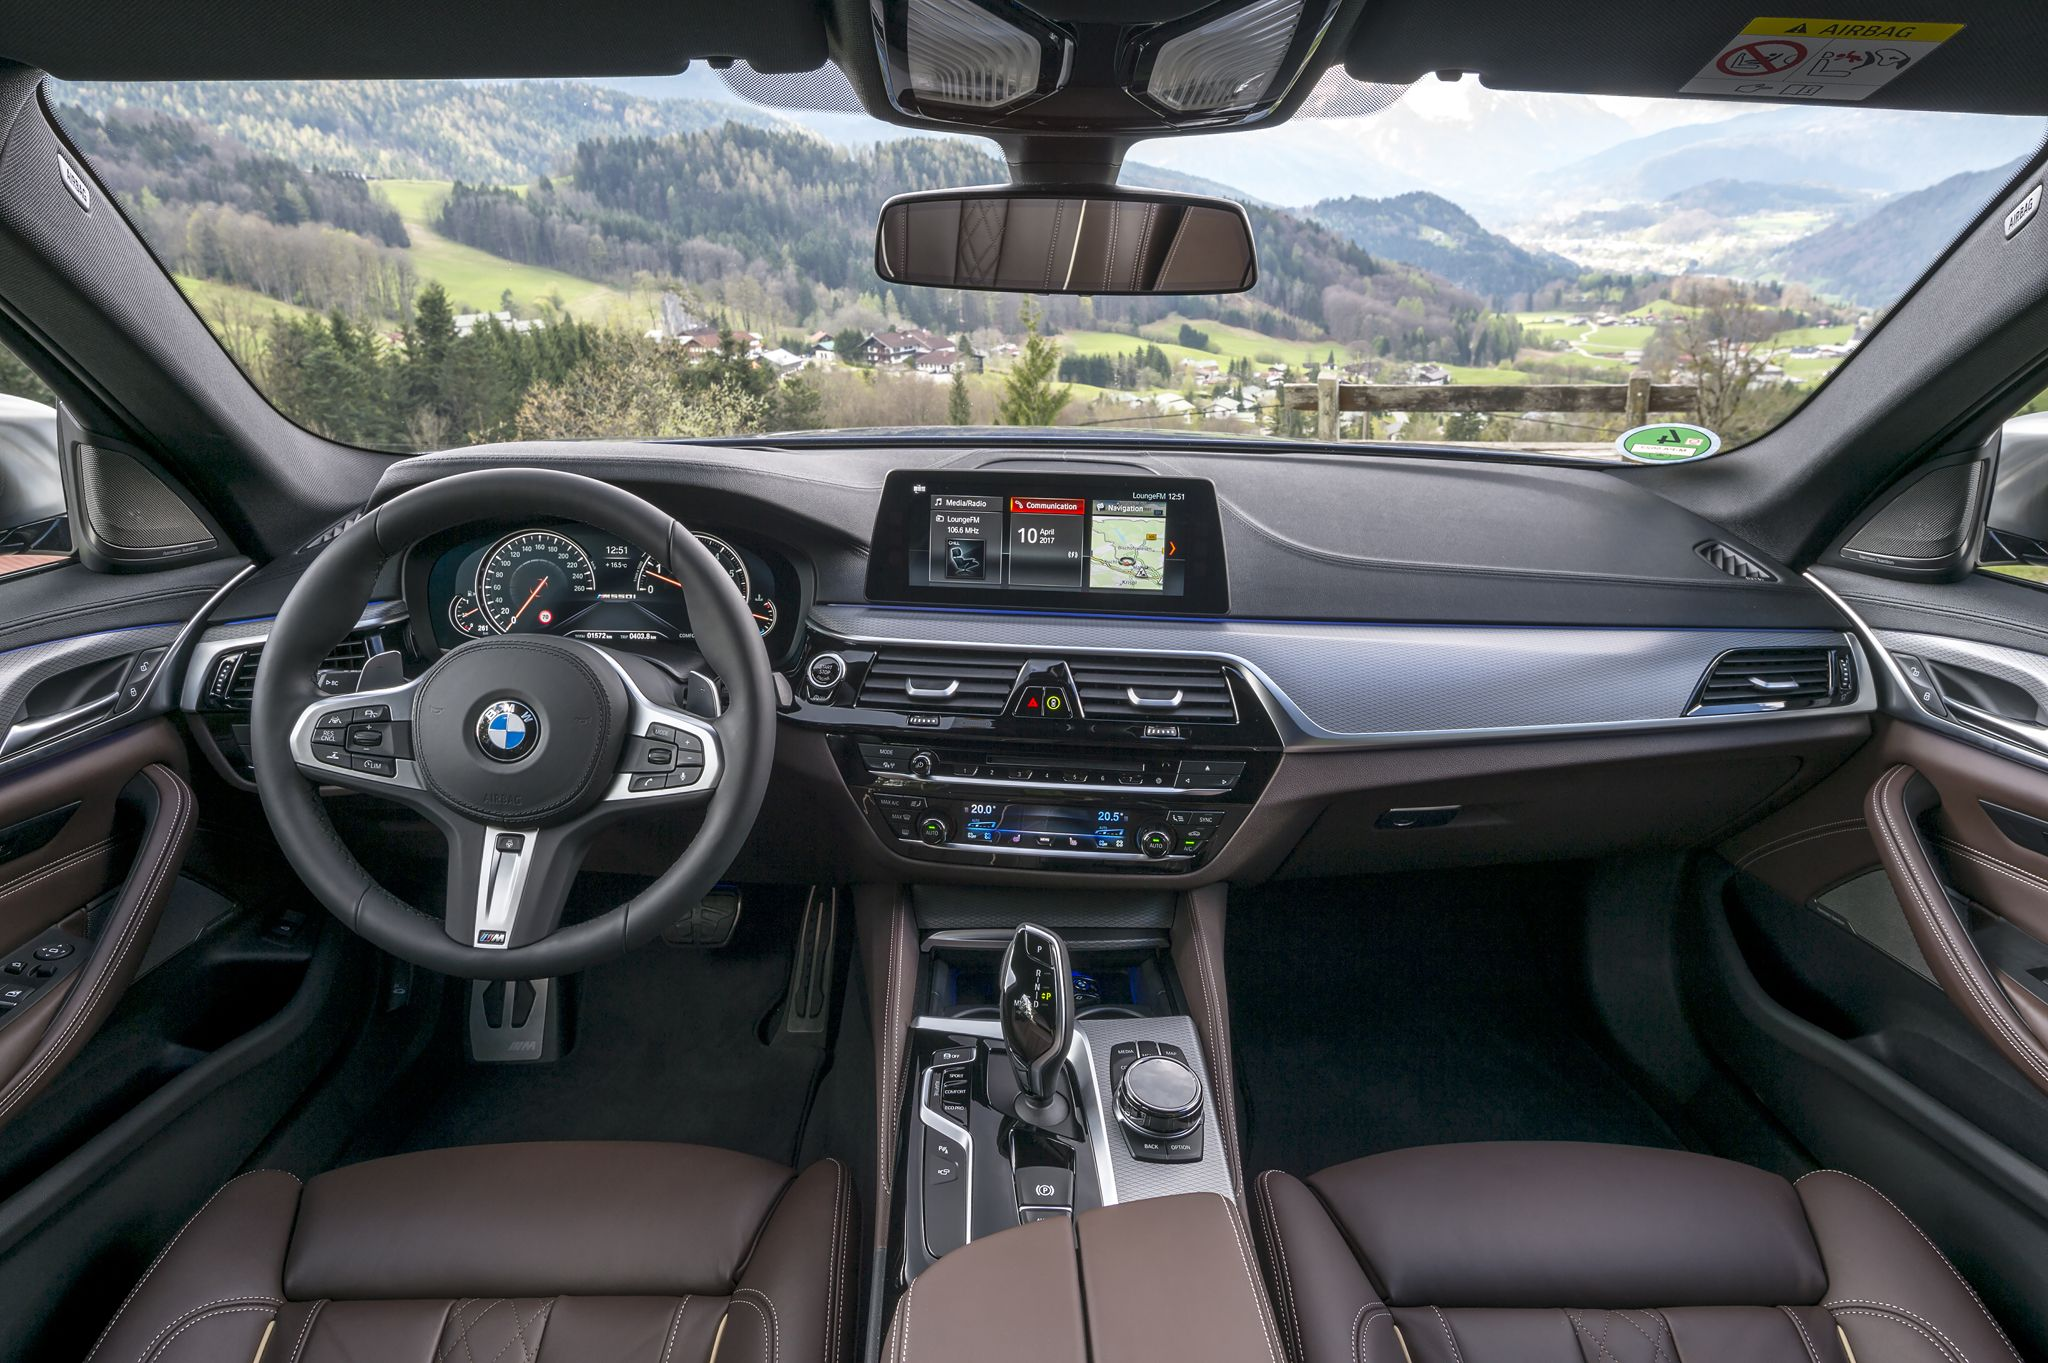 Pin By Bmw Life On Nzidz In 2020 Bmw Sedan Performance Engines